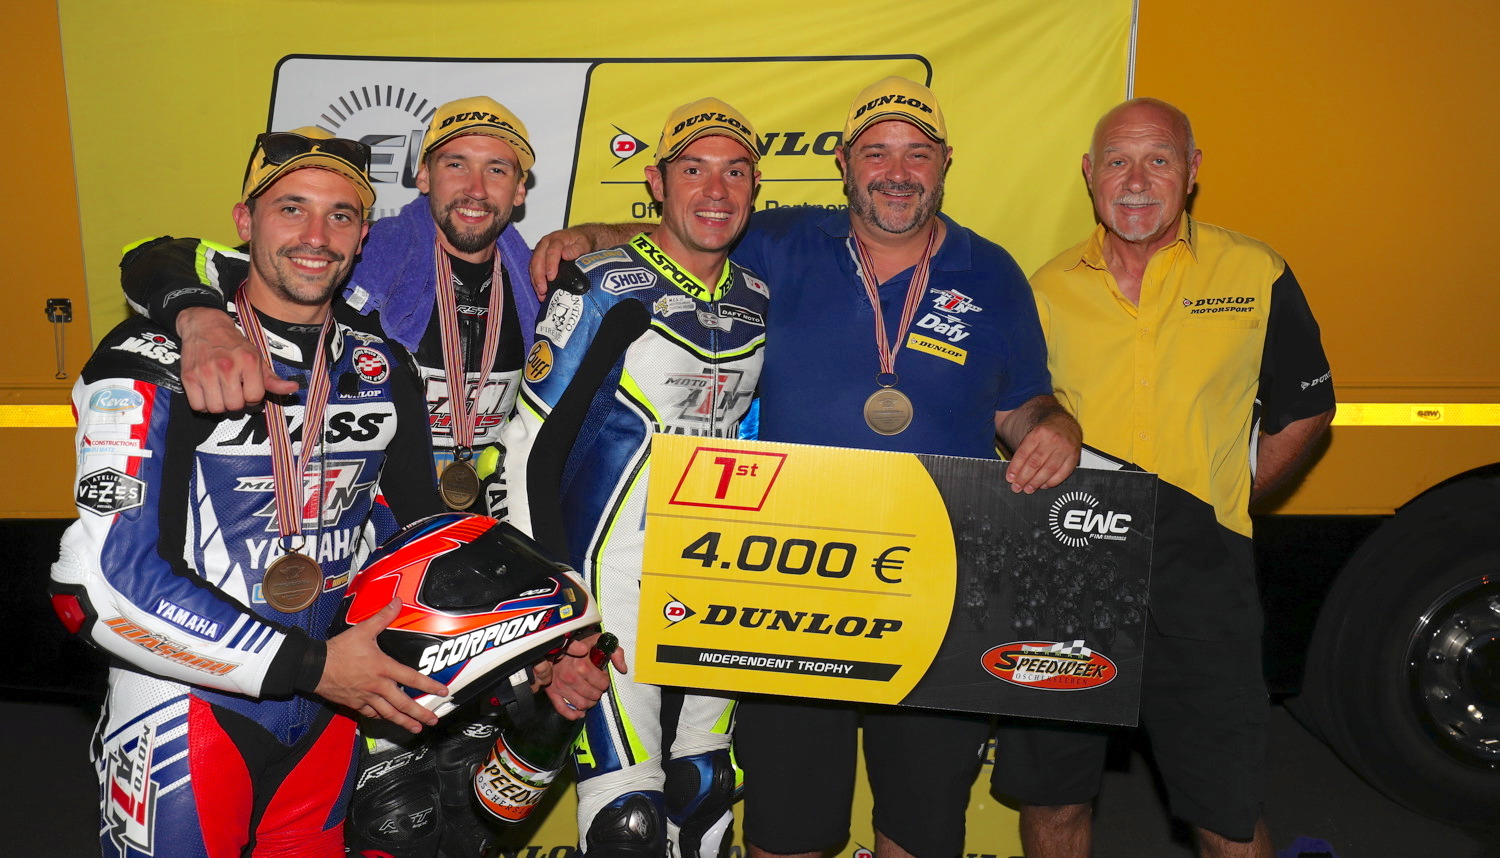 Moto Ain wins EWC Dunlop Independent Trophy in Germany